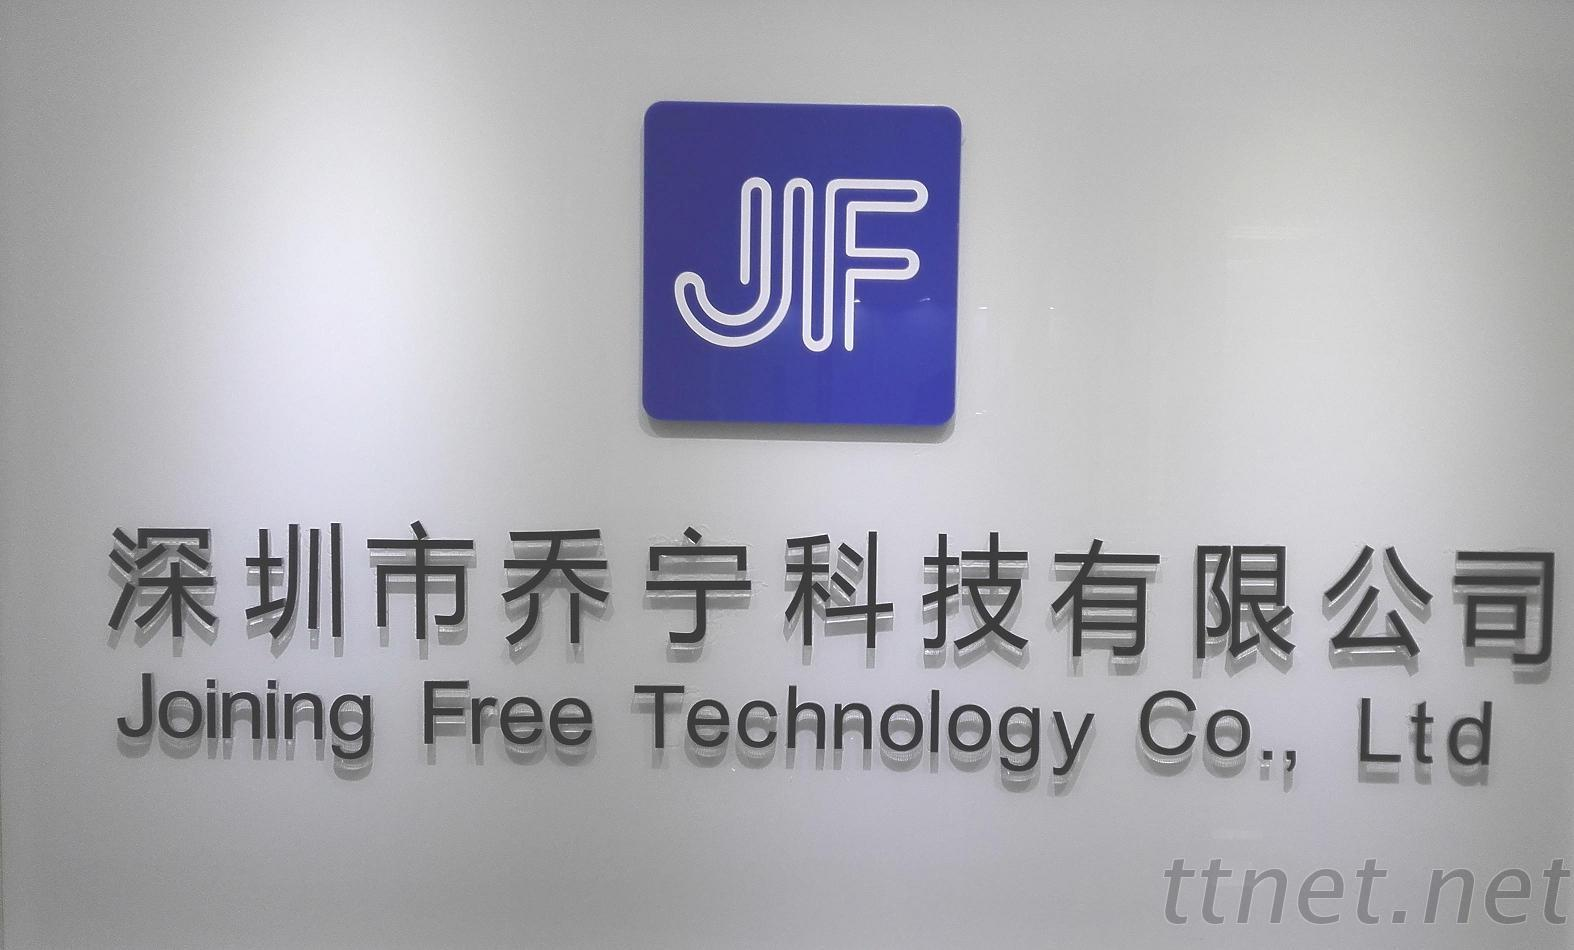 Joining Free Technology Co., Ltd.